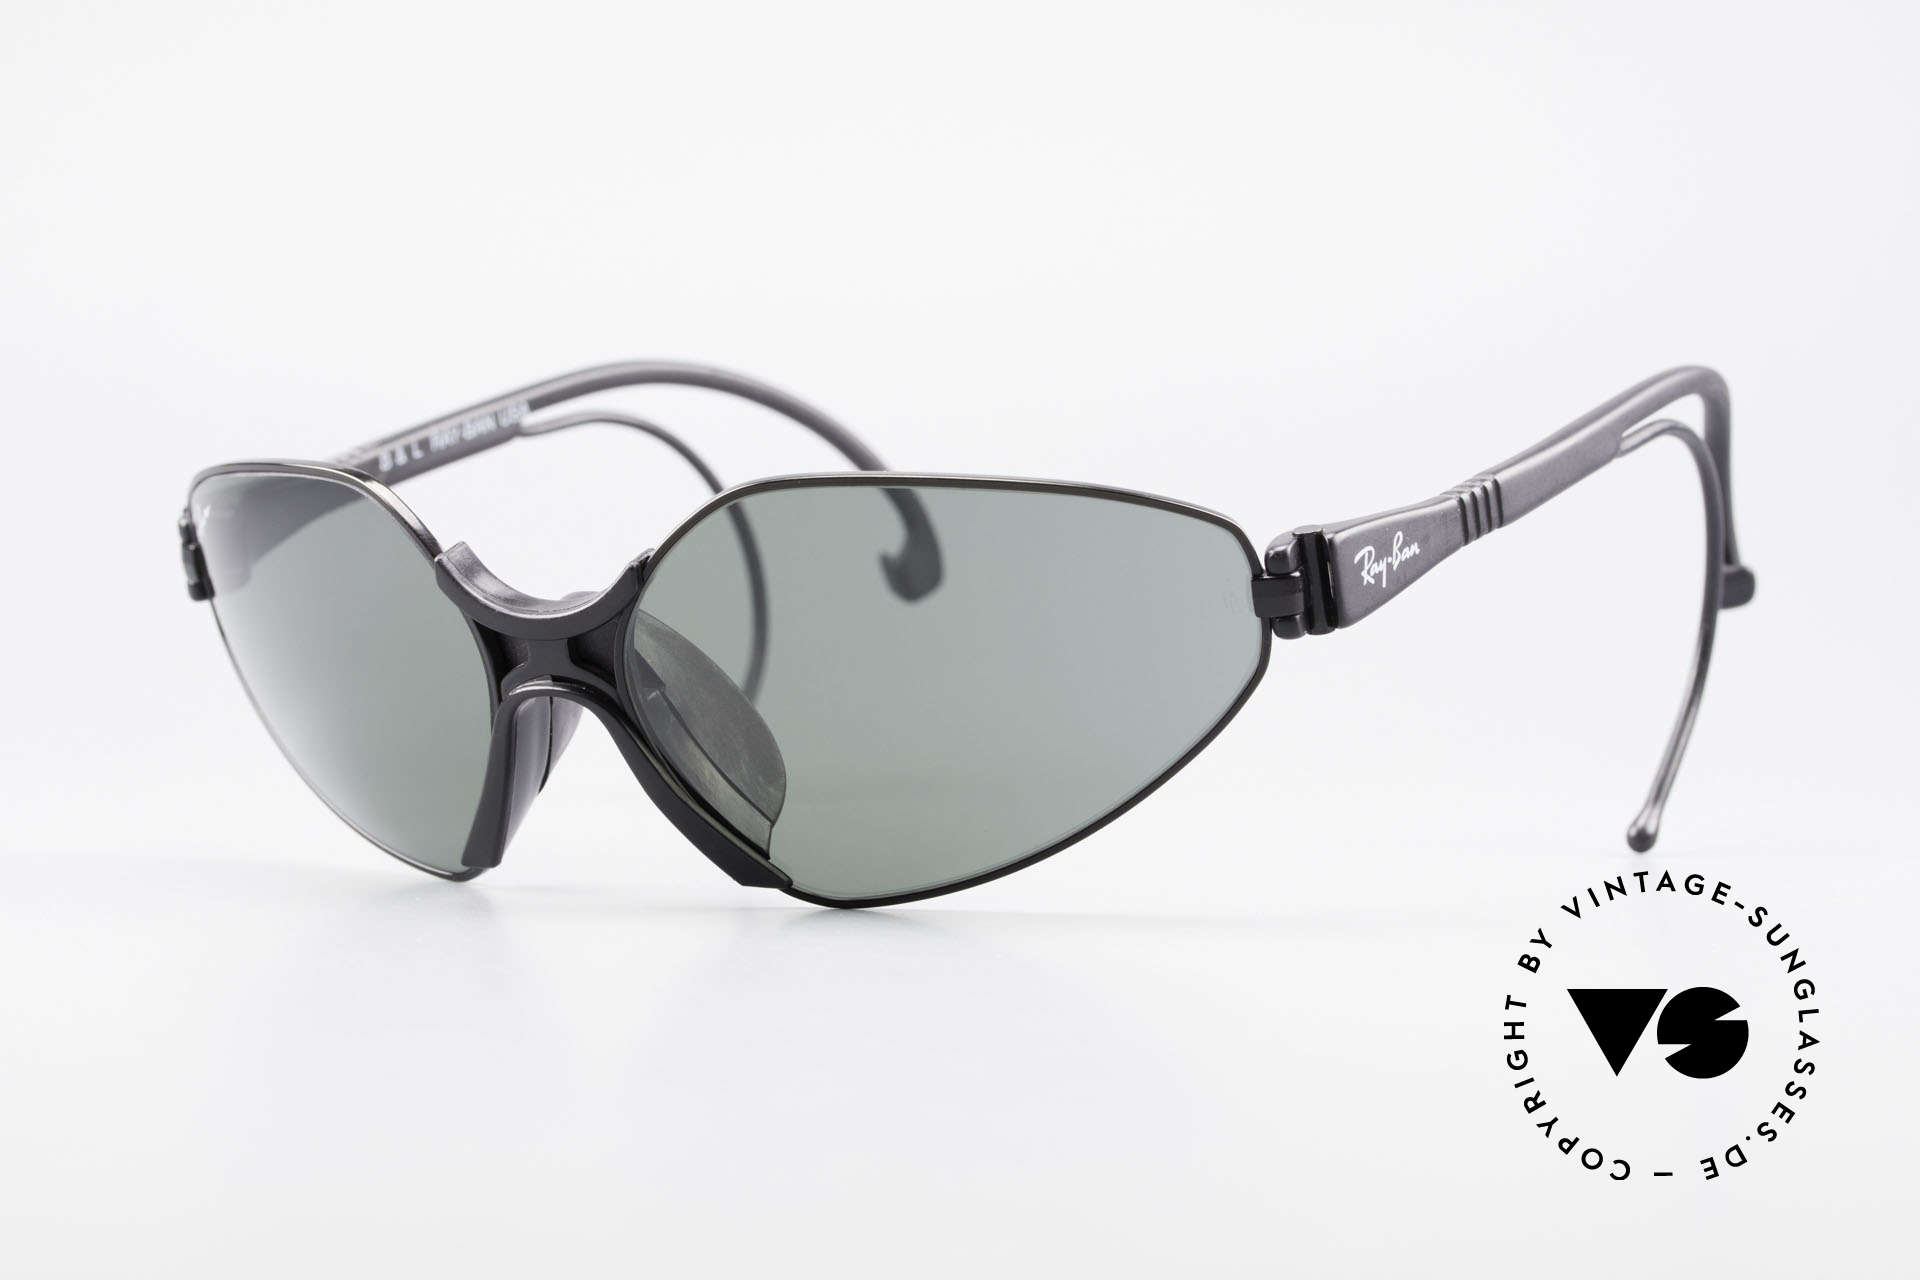 Ray Ban Sport Series 1 G20 Chromax B&L Sun Lenses, Ray-Ban SportSeries 1: vintage 90's sports shades, Made for Men